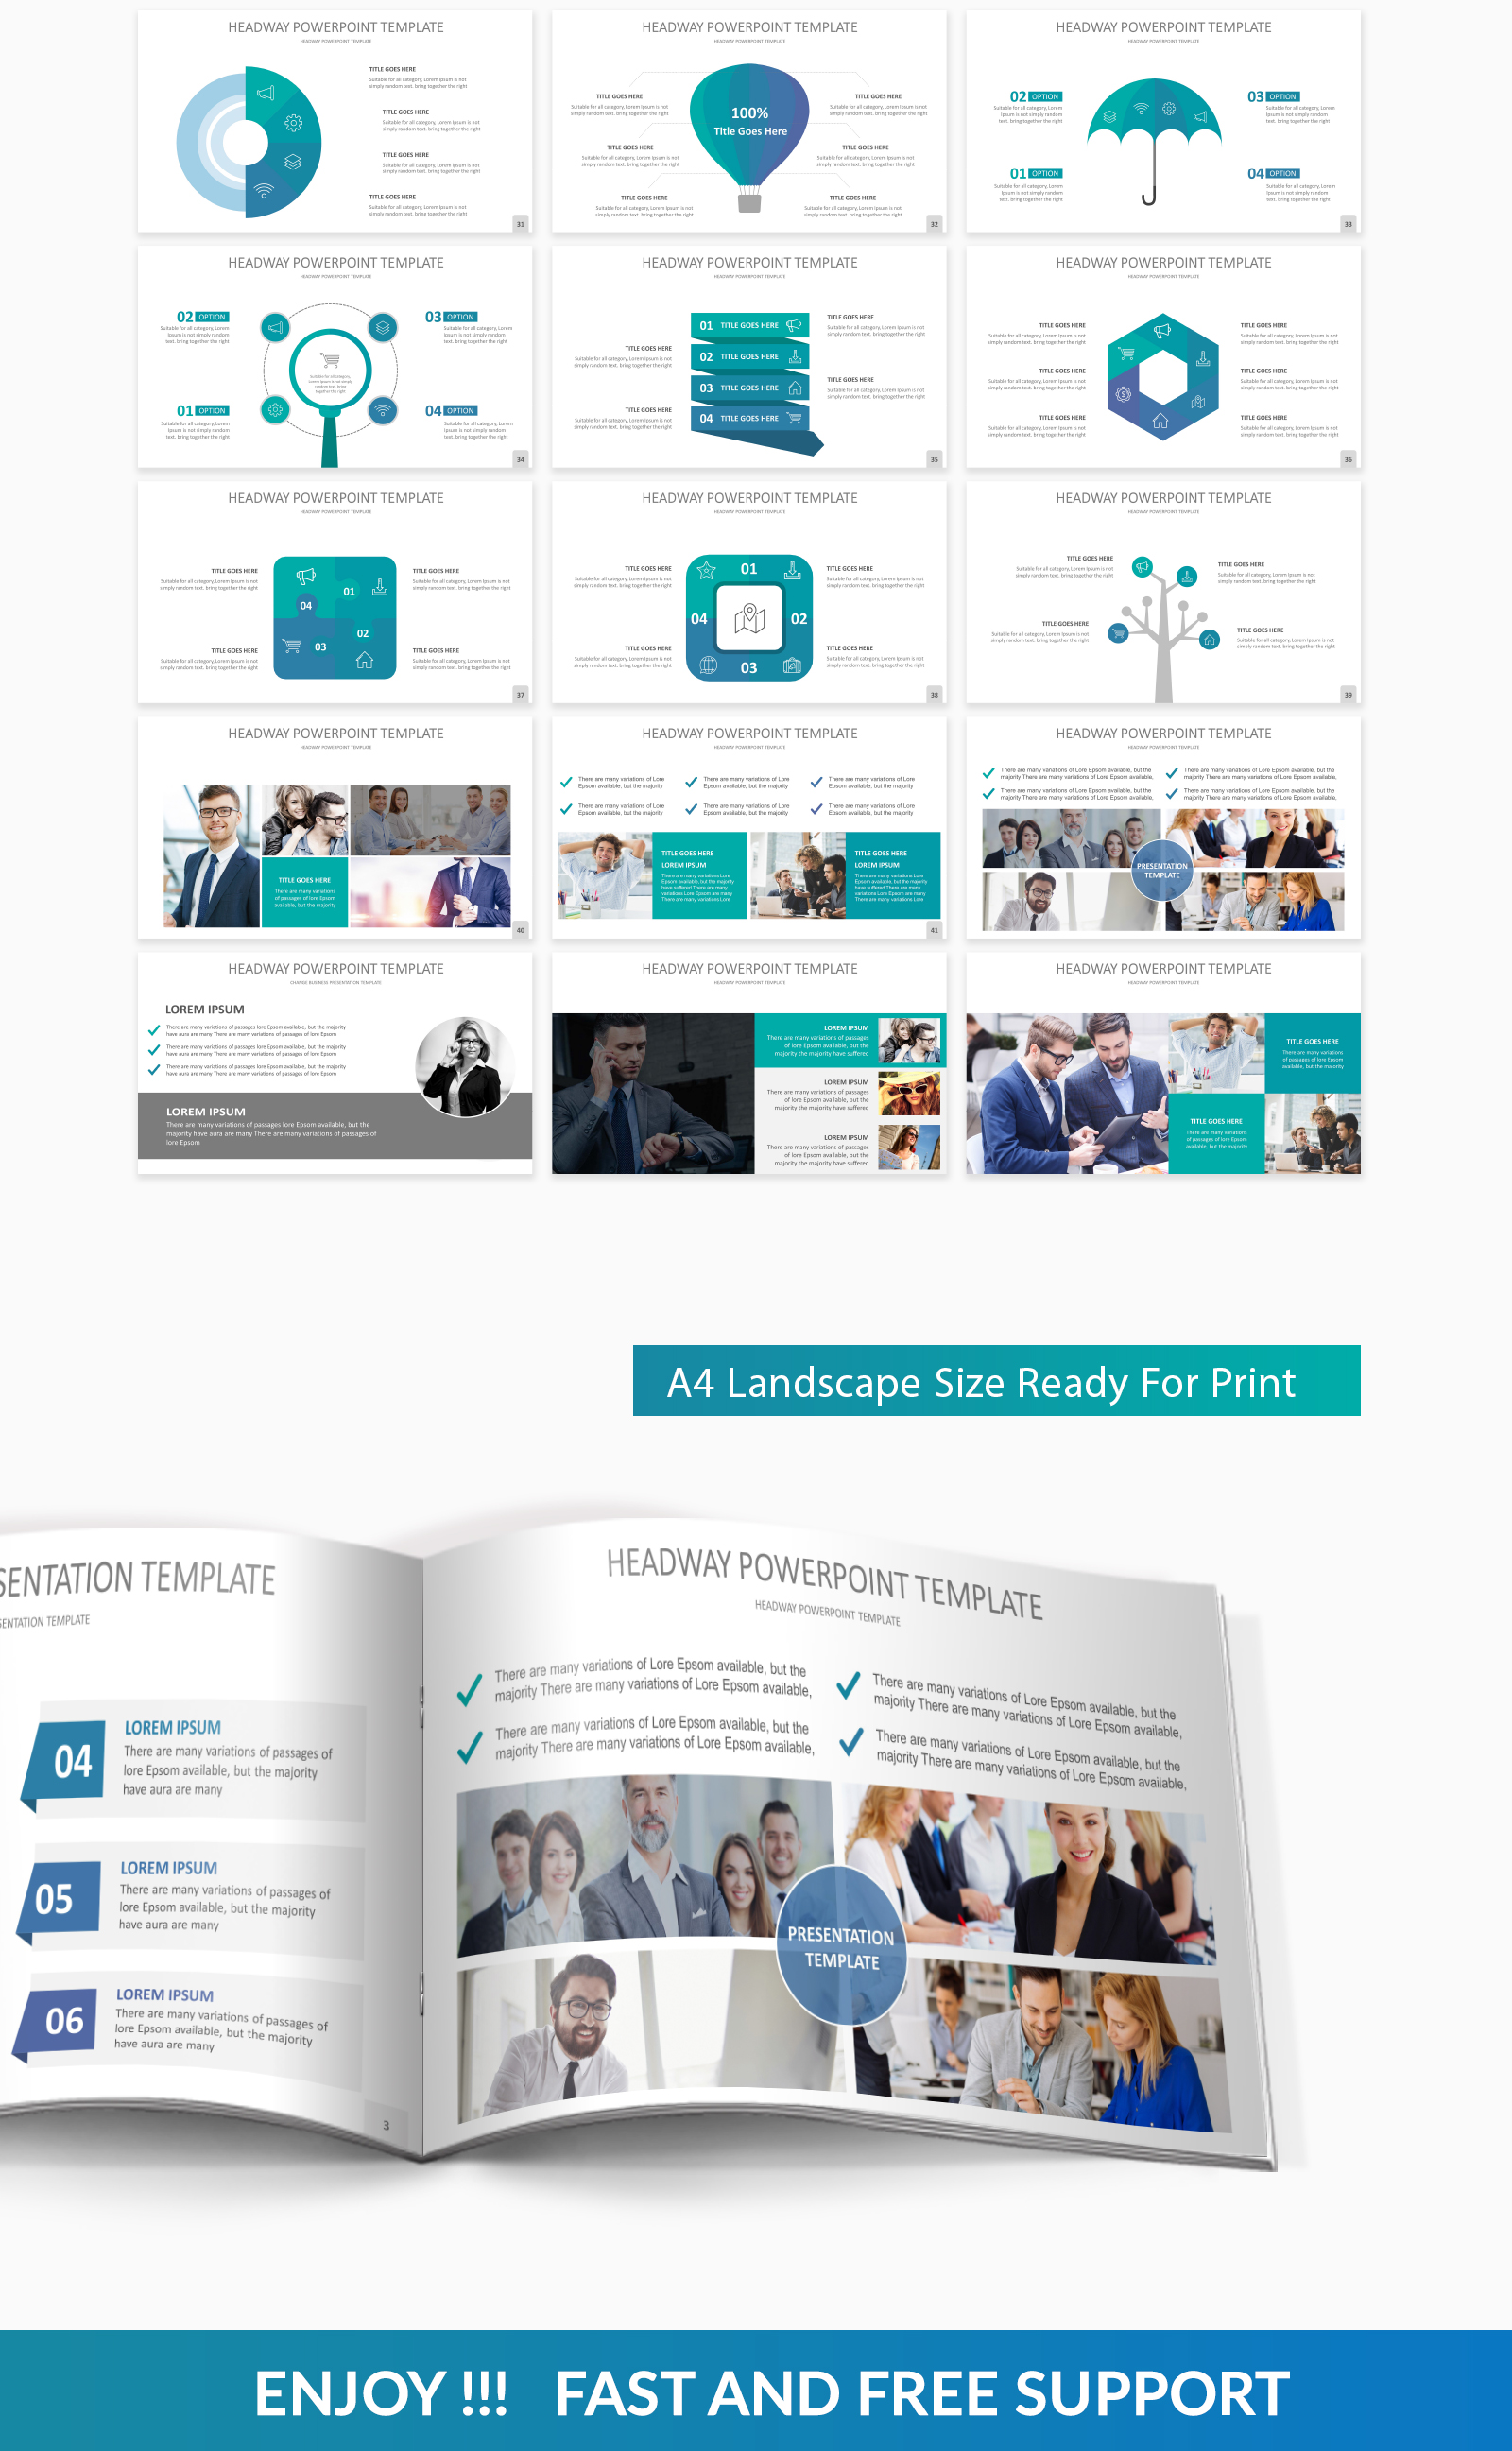 Headway PowerPoint Template